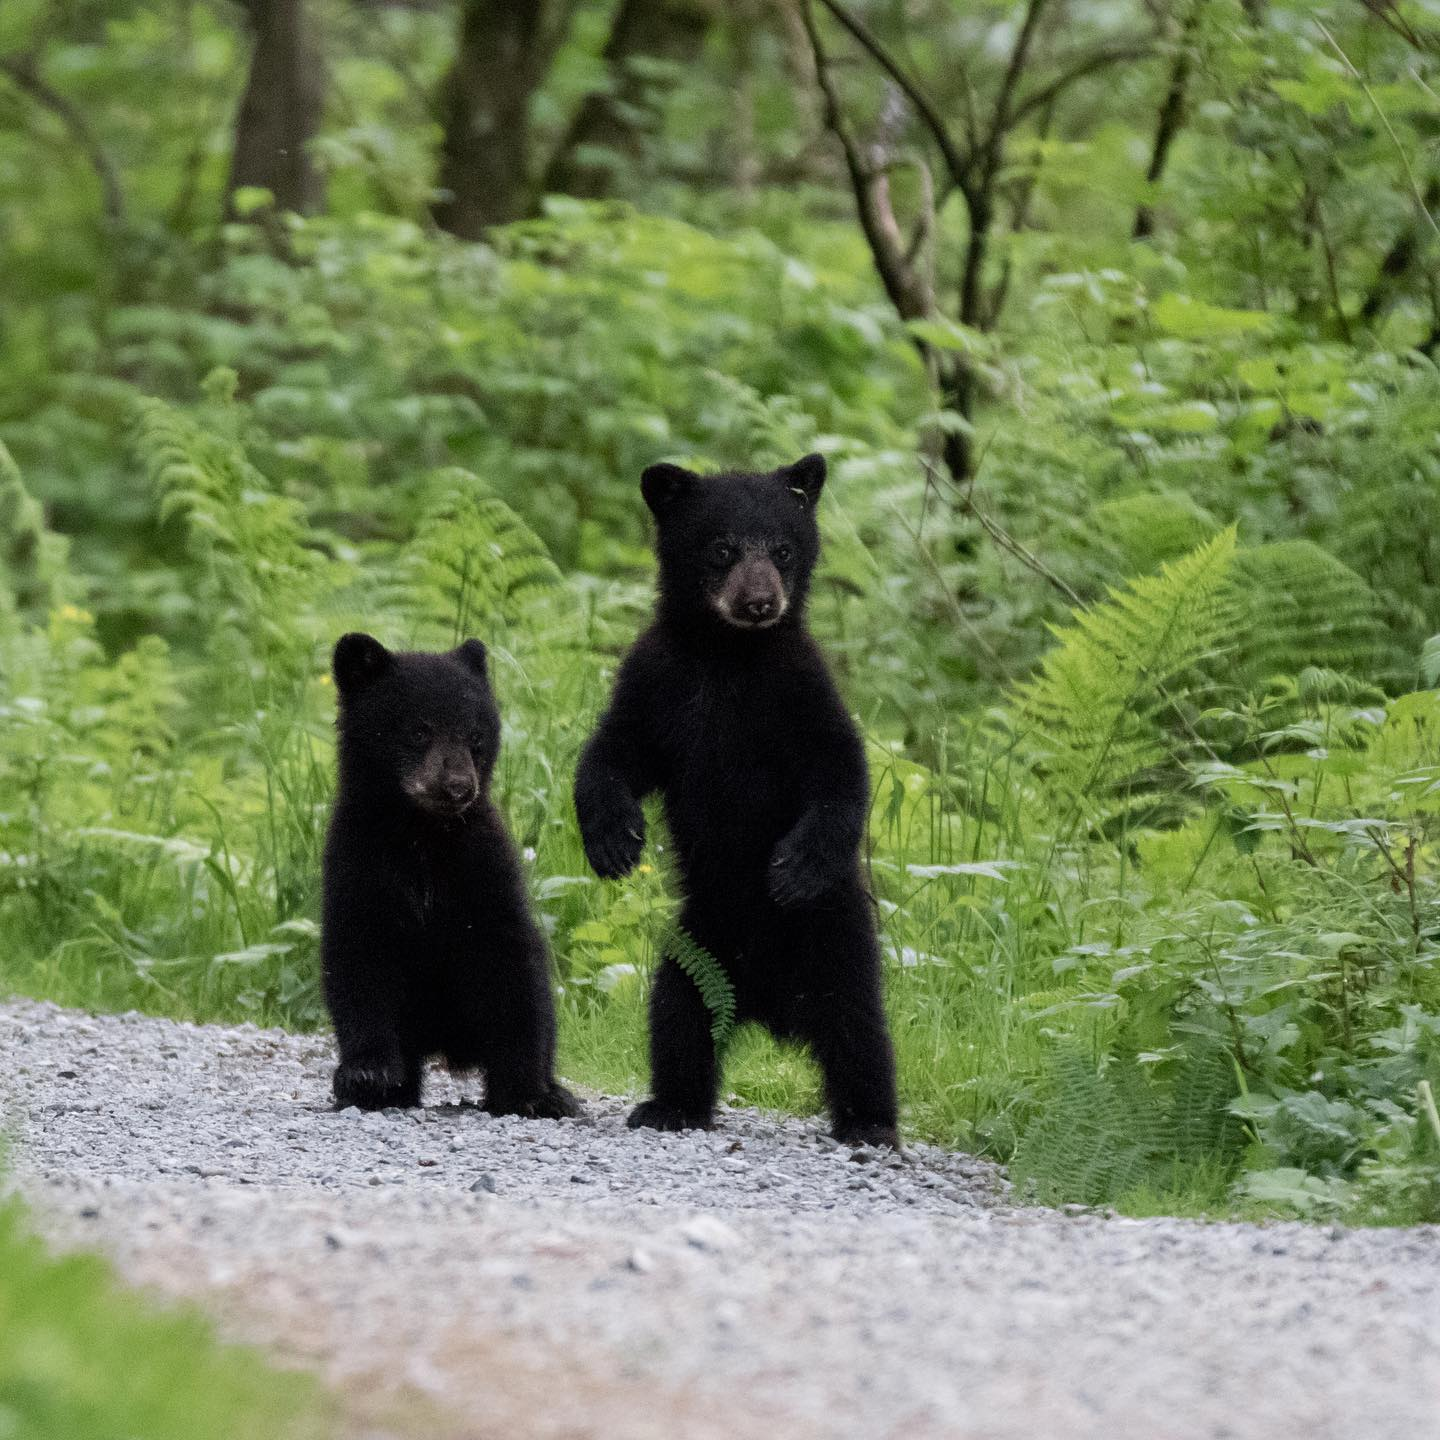 West Vancouver residents asked to be on lookout for orphan bear cubs